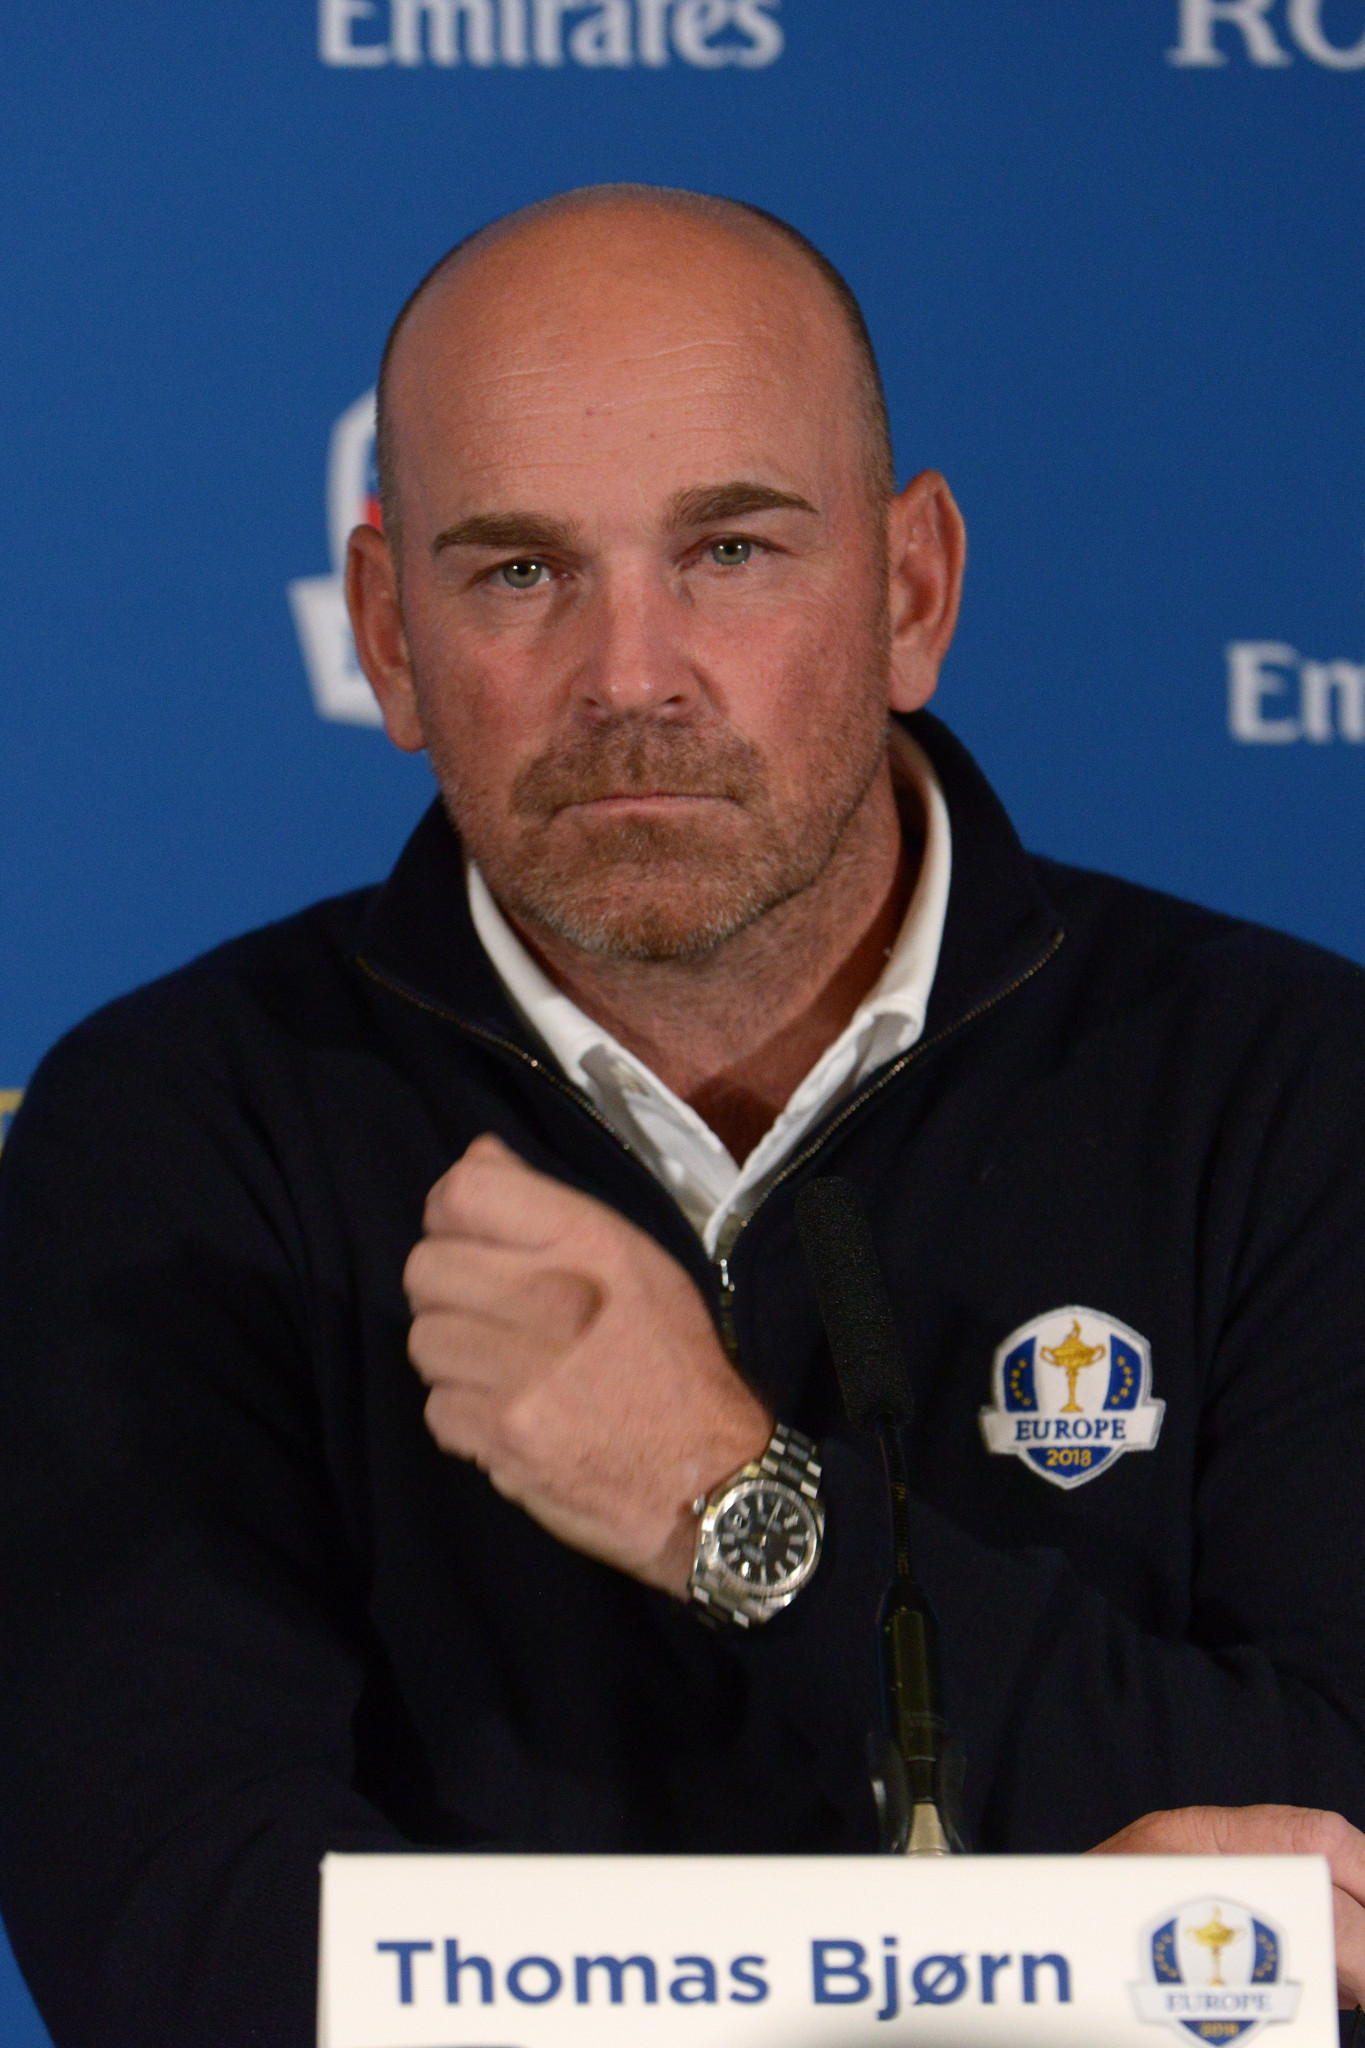 Denmark's Thomas Bjørn, who will captain the Europe team for the 2018 Ryder Cup  ©Getty Images